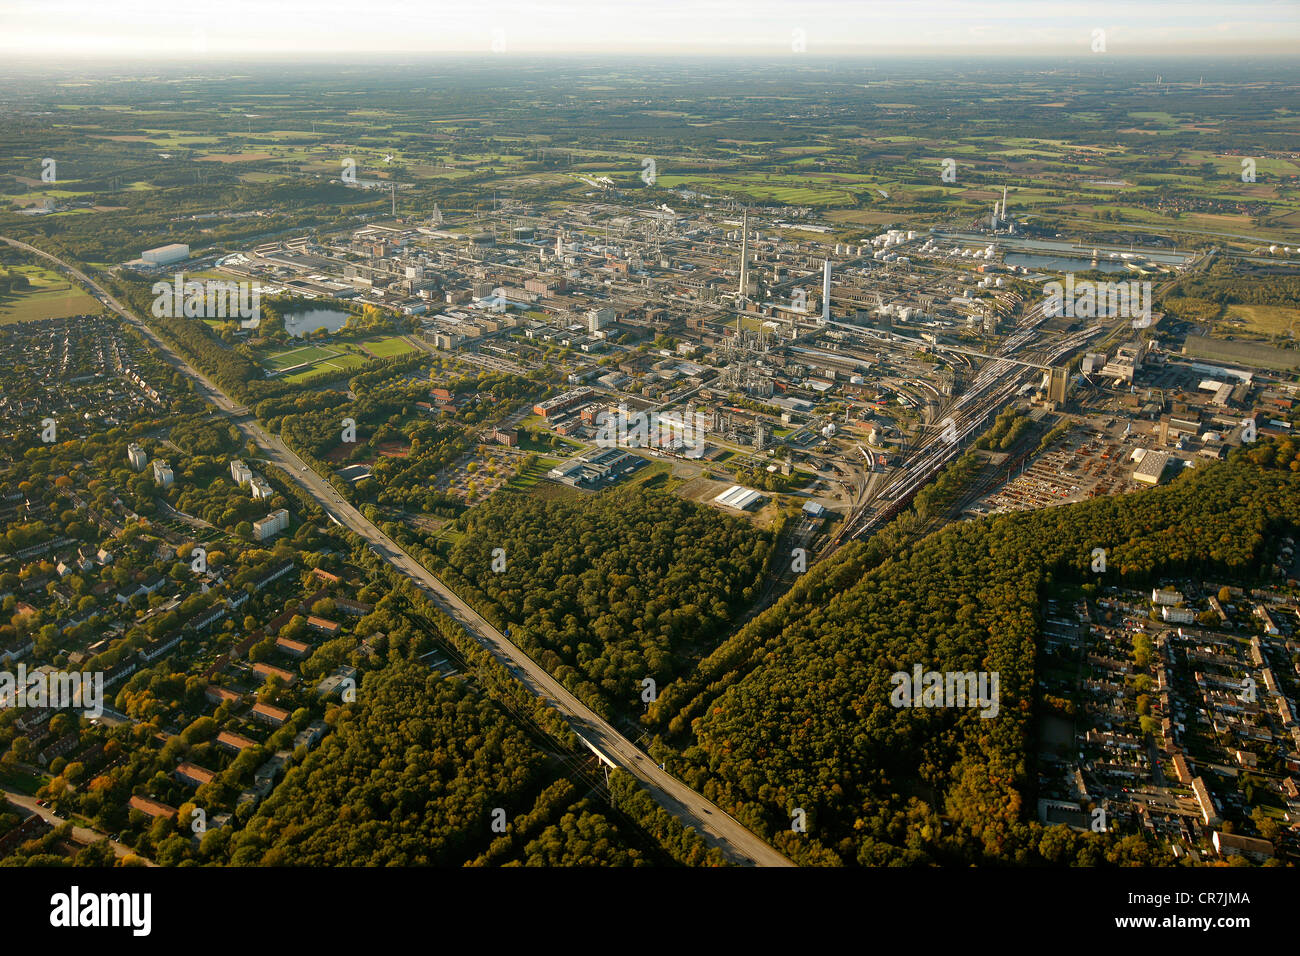 Aerial view, Degussa, chemical works Huels, Marl-Hamm chemical park, Marl, Ruhr Area, North Rhine-Westphalia, Germany, - Stock Image